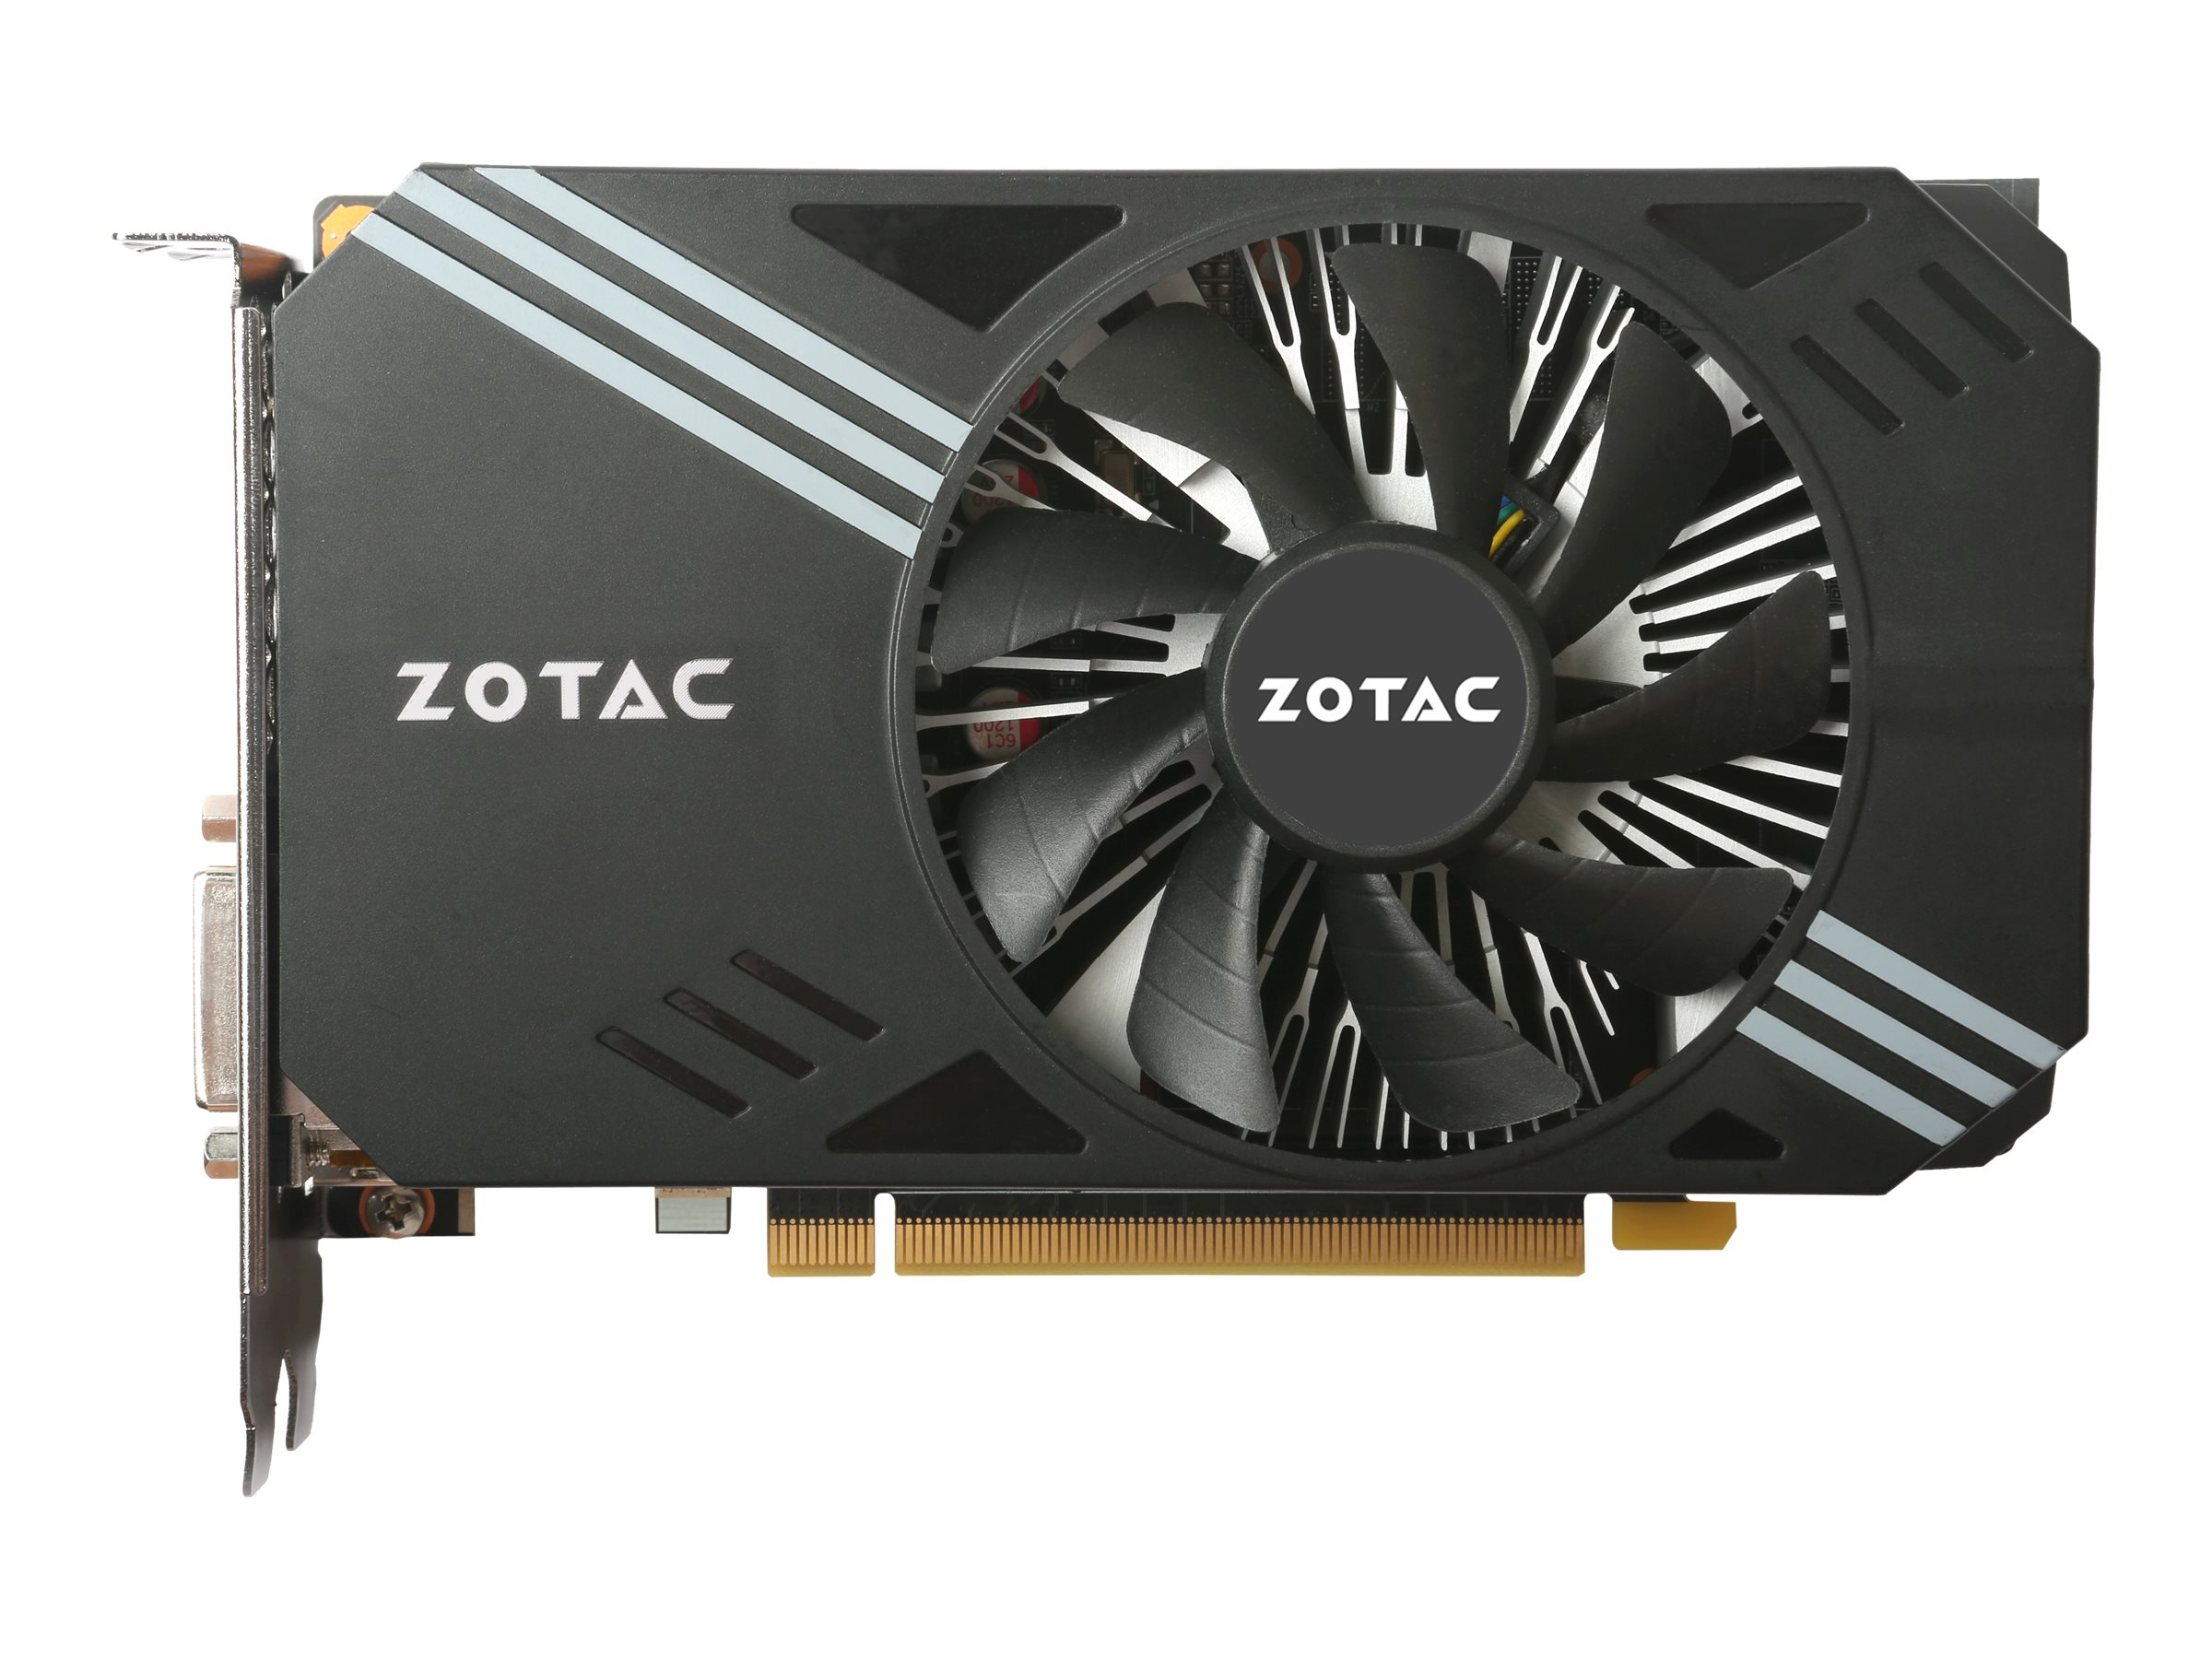 Zotac GeForce GTX 1060 PCIe Graphics Card, 3GB GDDR5, ZT-P10610A-10L